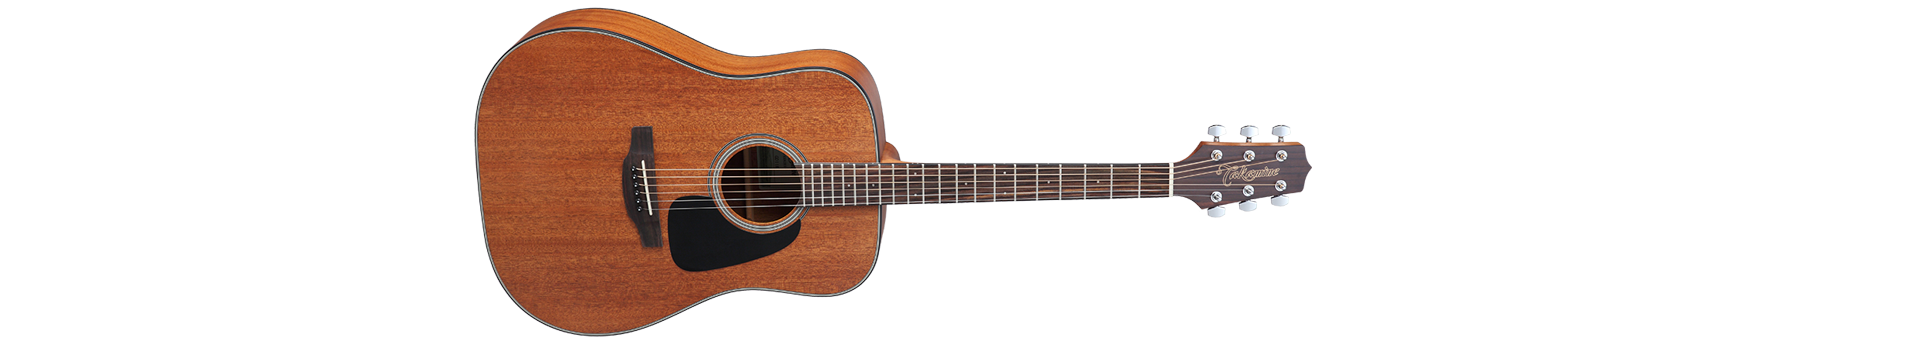 Takamine GD11M Dreadnought